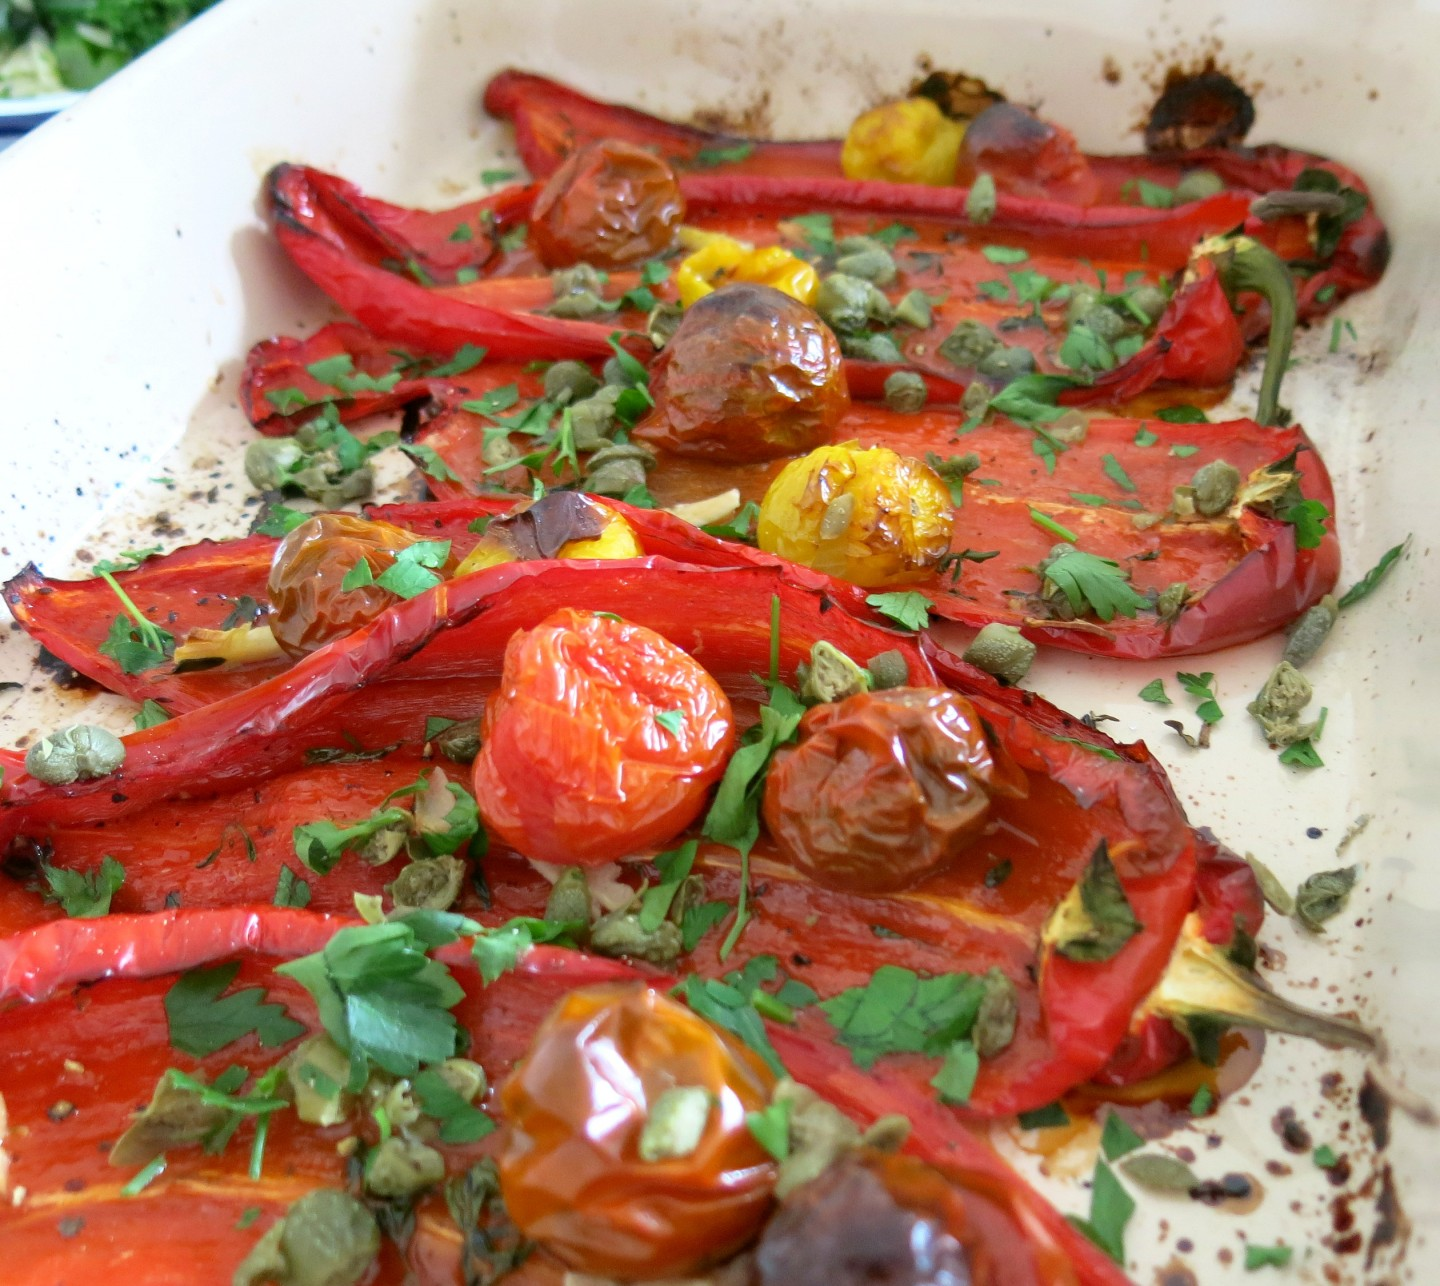 Roasted red pepper recipe from Ed Smith's new cookbook - On The Side. Perfect for an alternative veggie Sunday lunch.